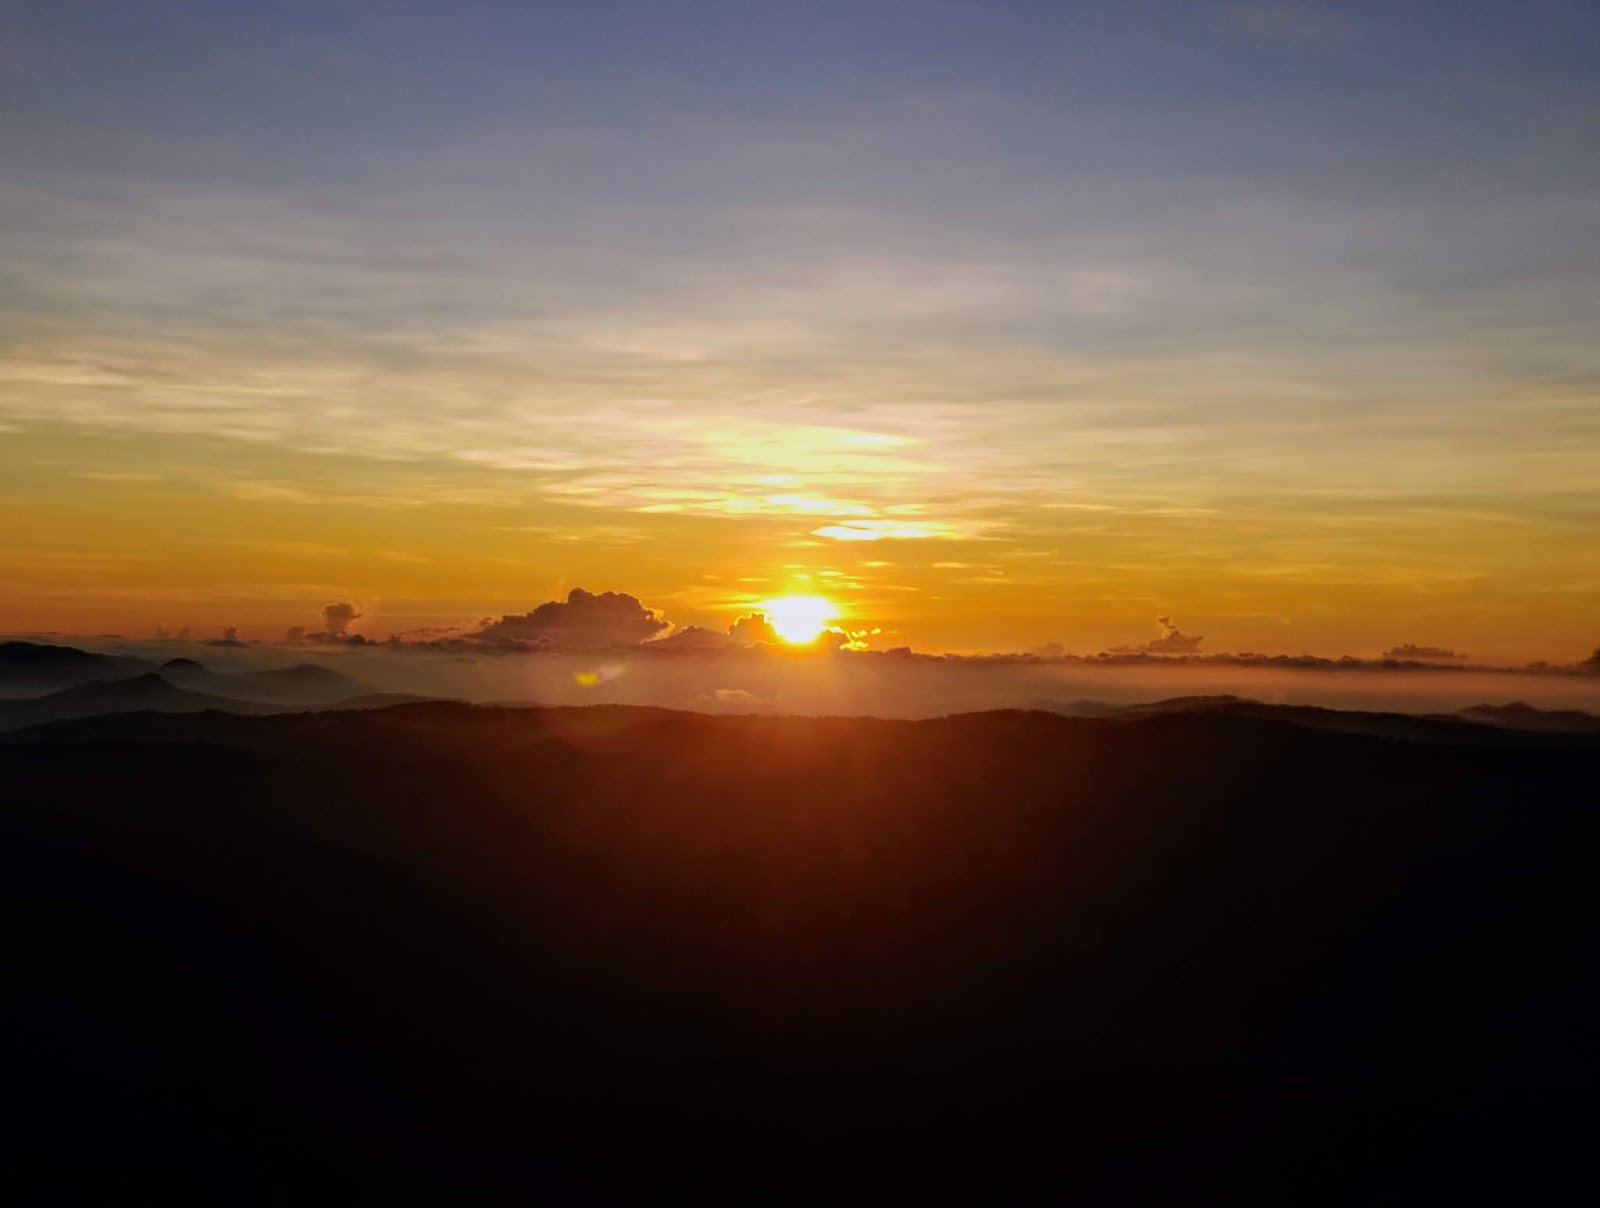 Perfect sunrise at Manjakuttai viewpoint